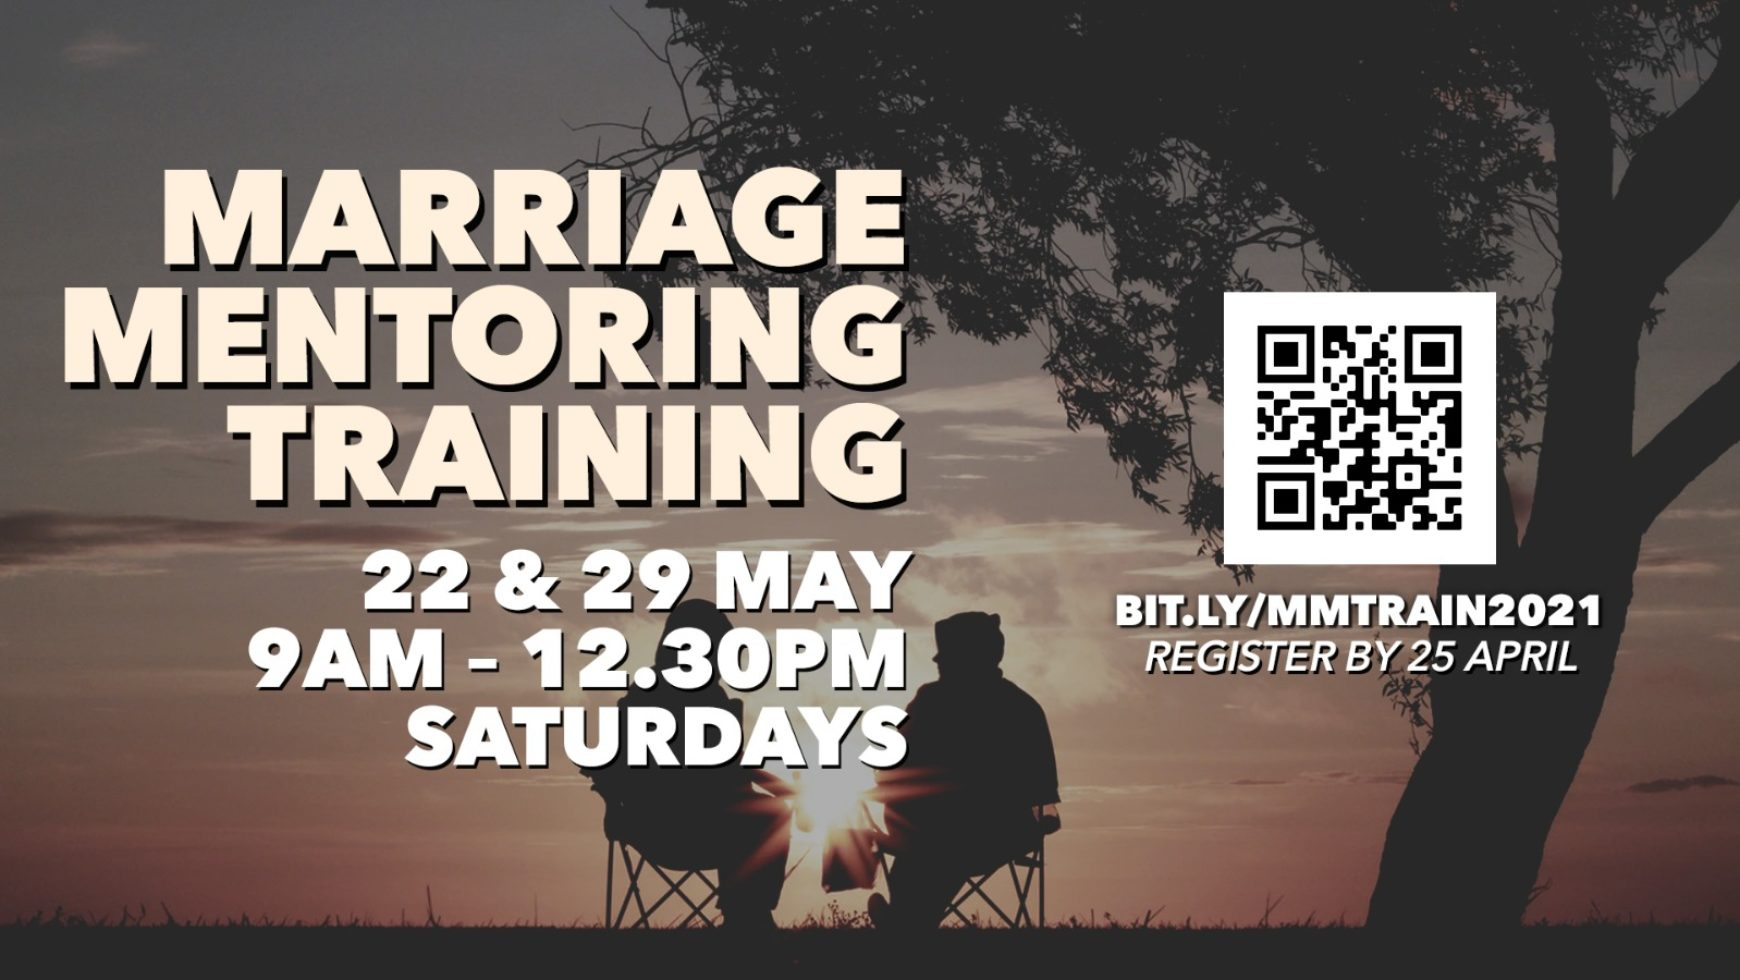 Marriage Mentoring Training